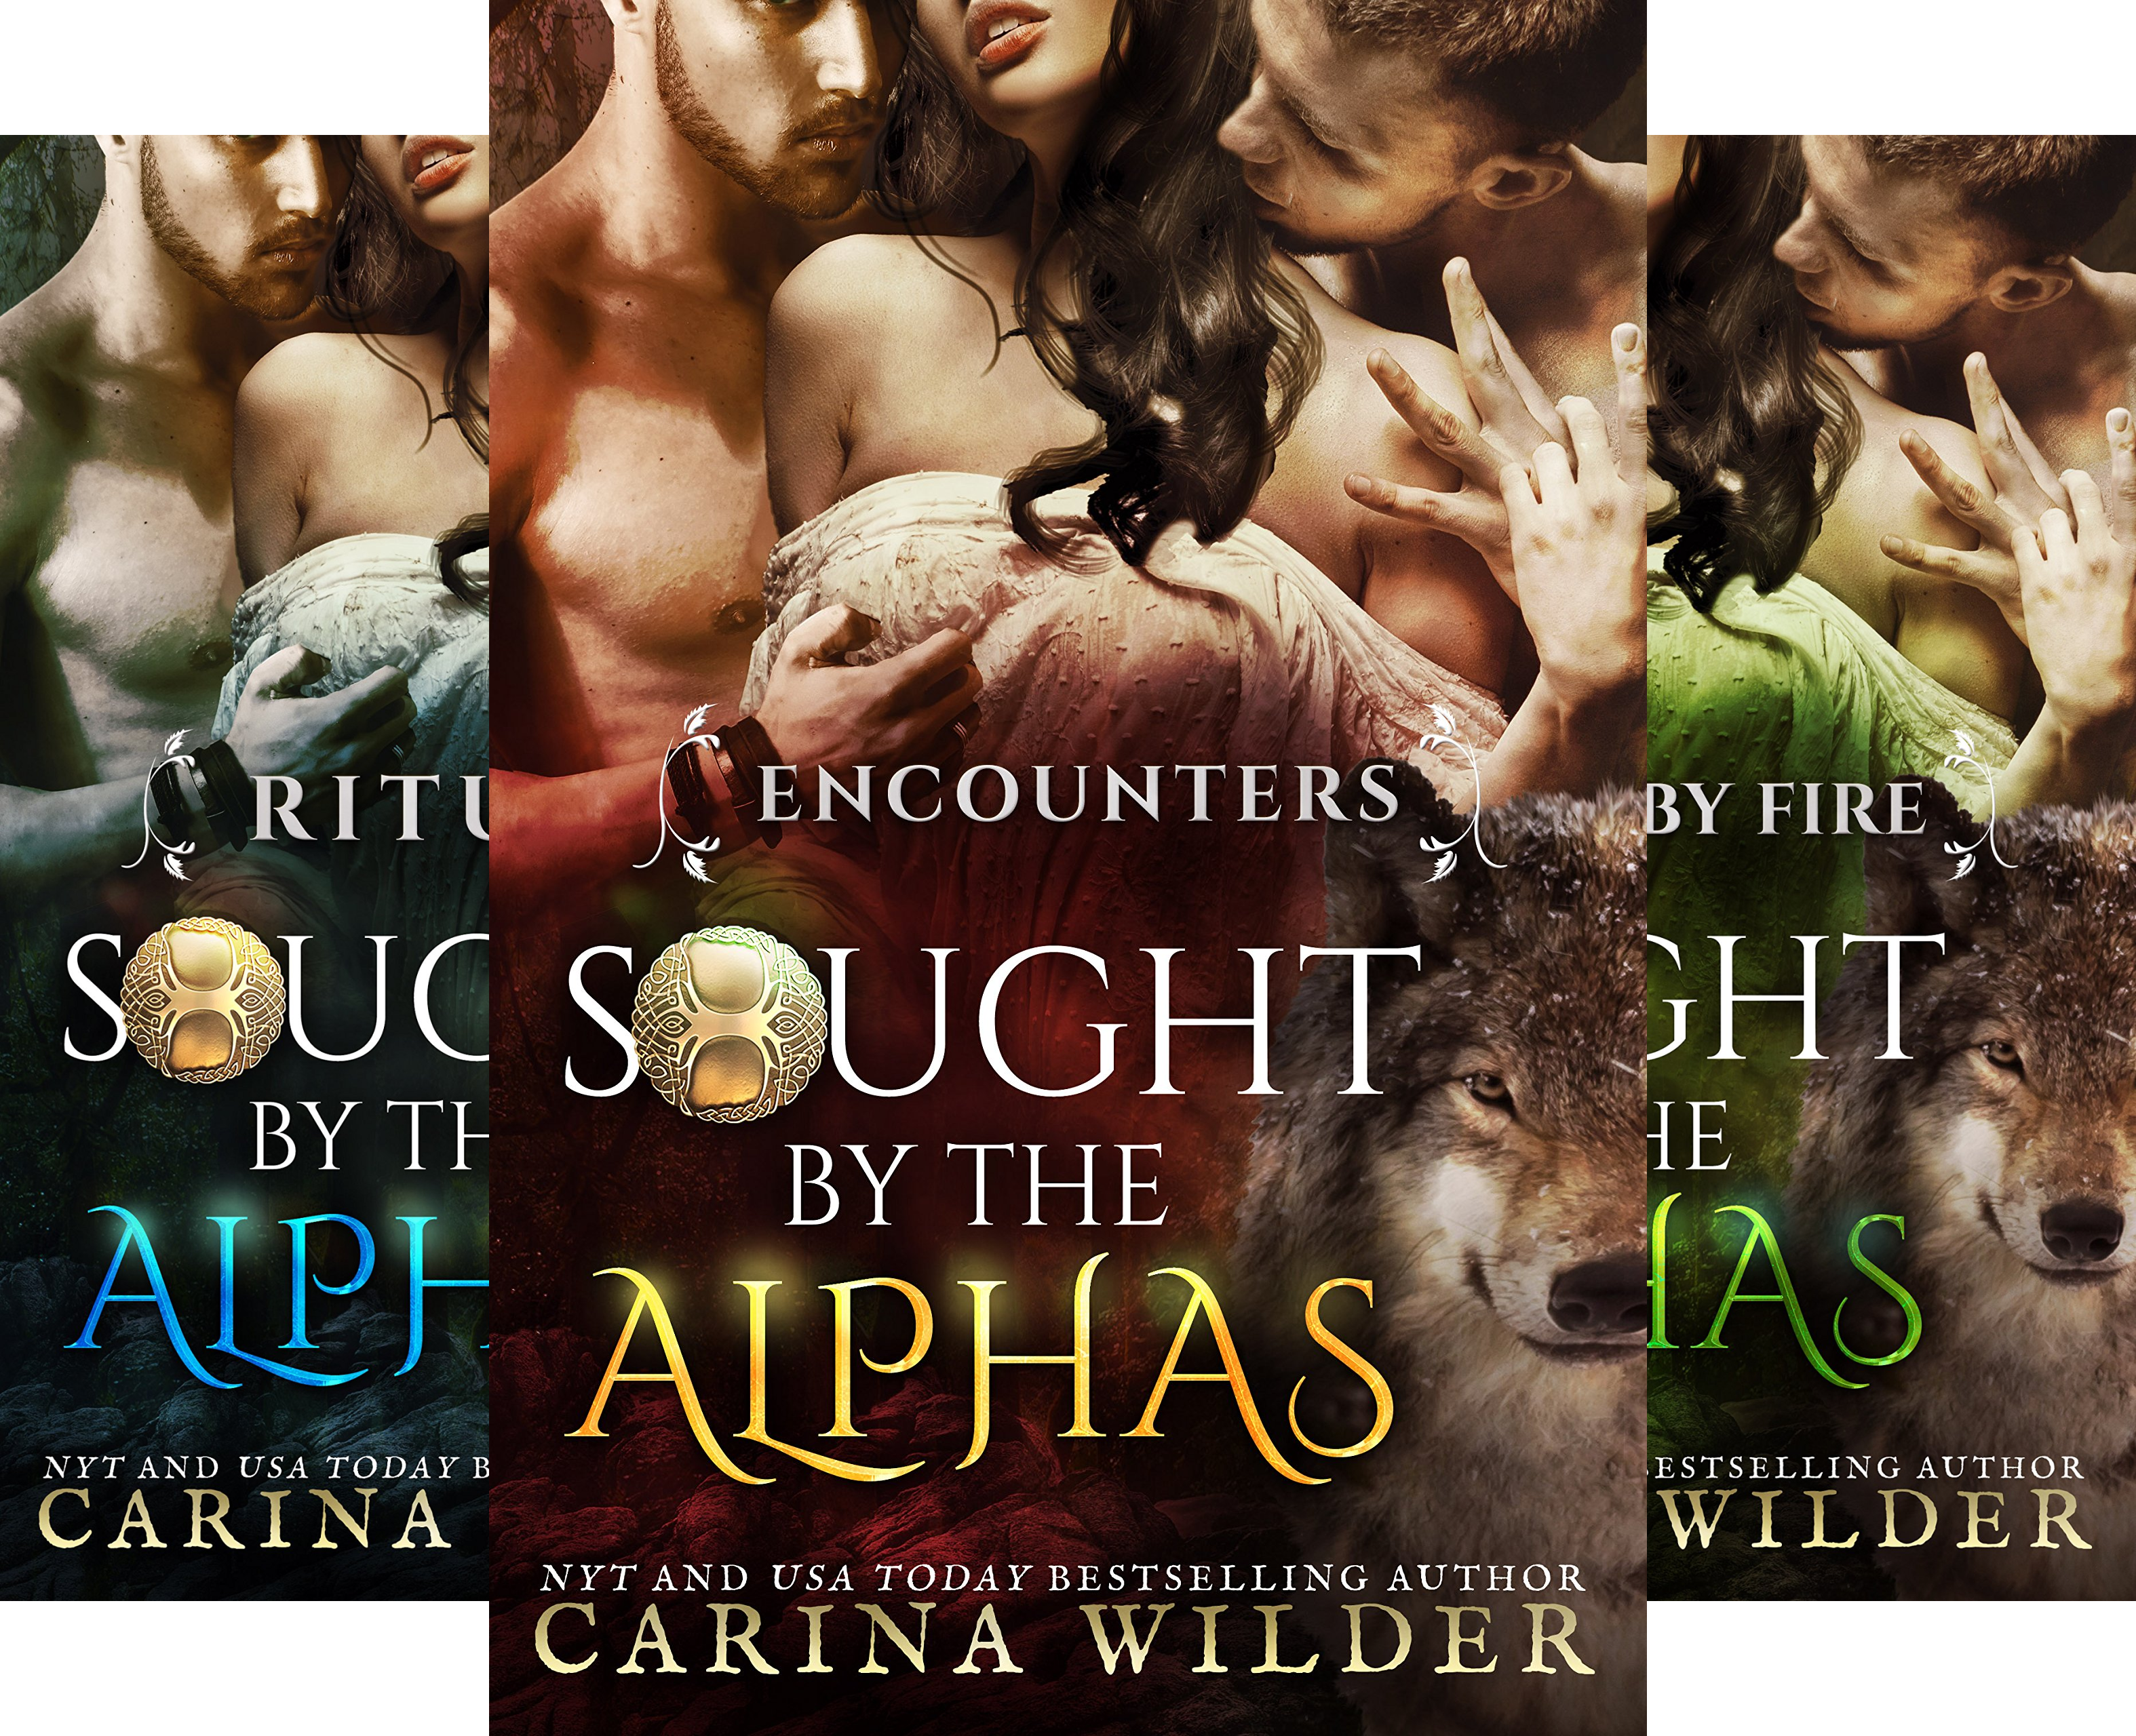 Sought by the Alphas (5 Book Series)